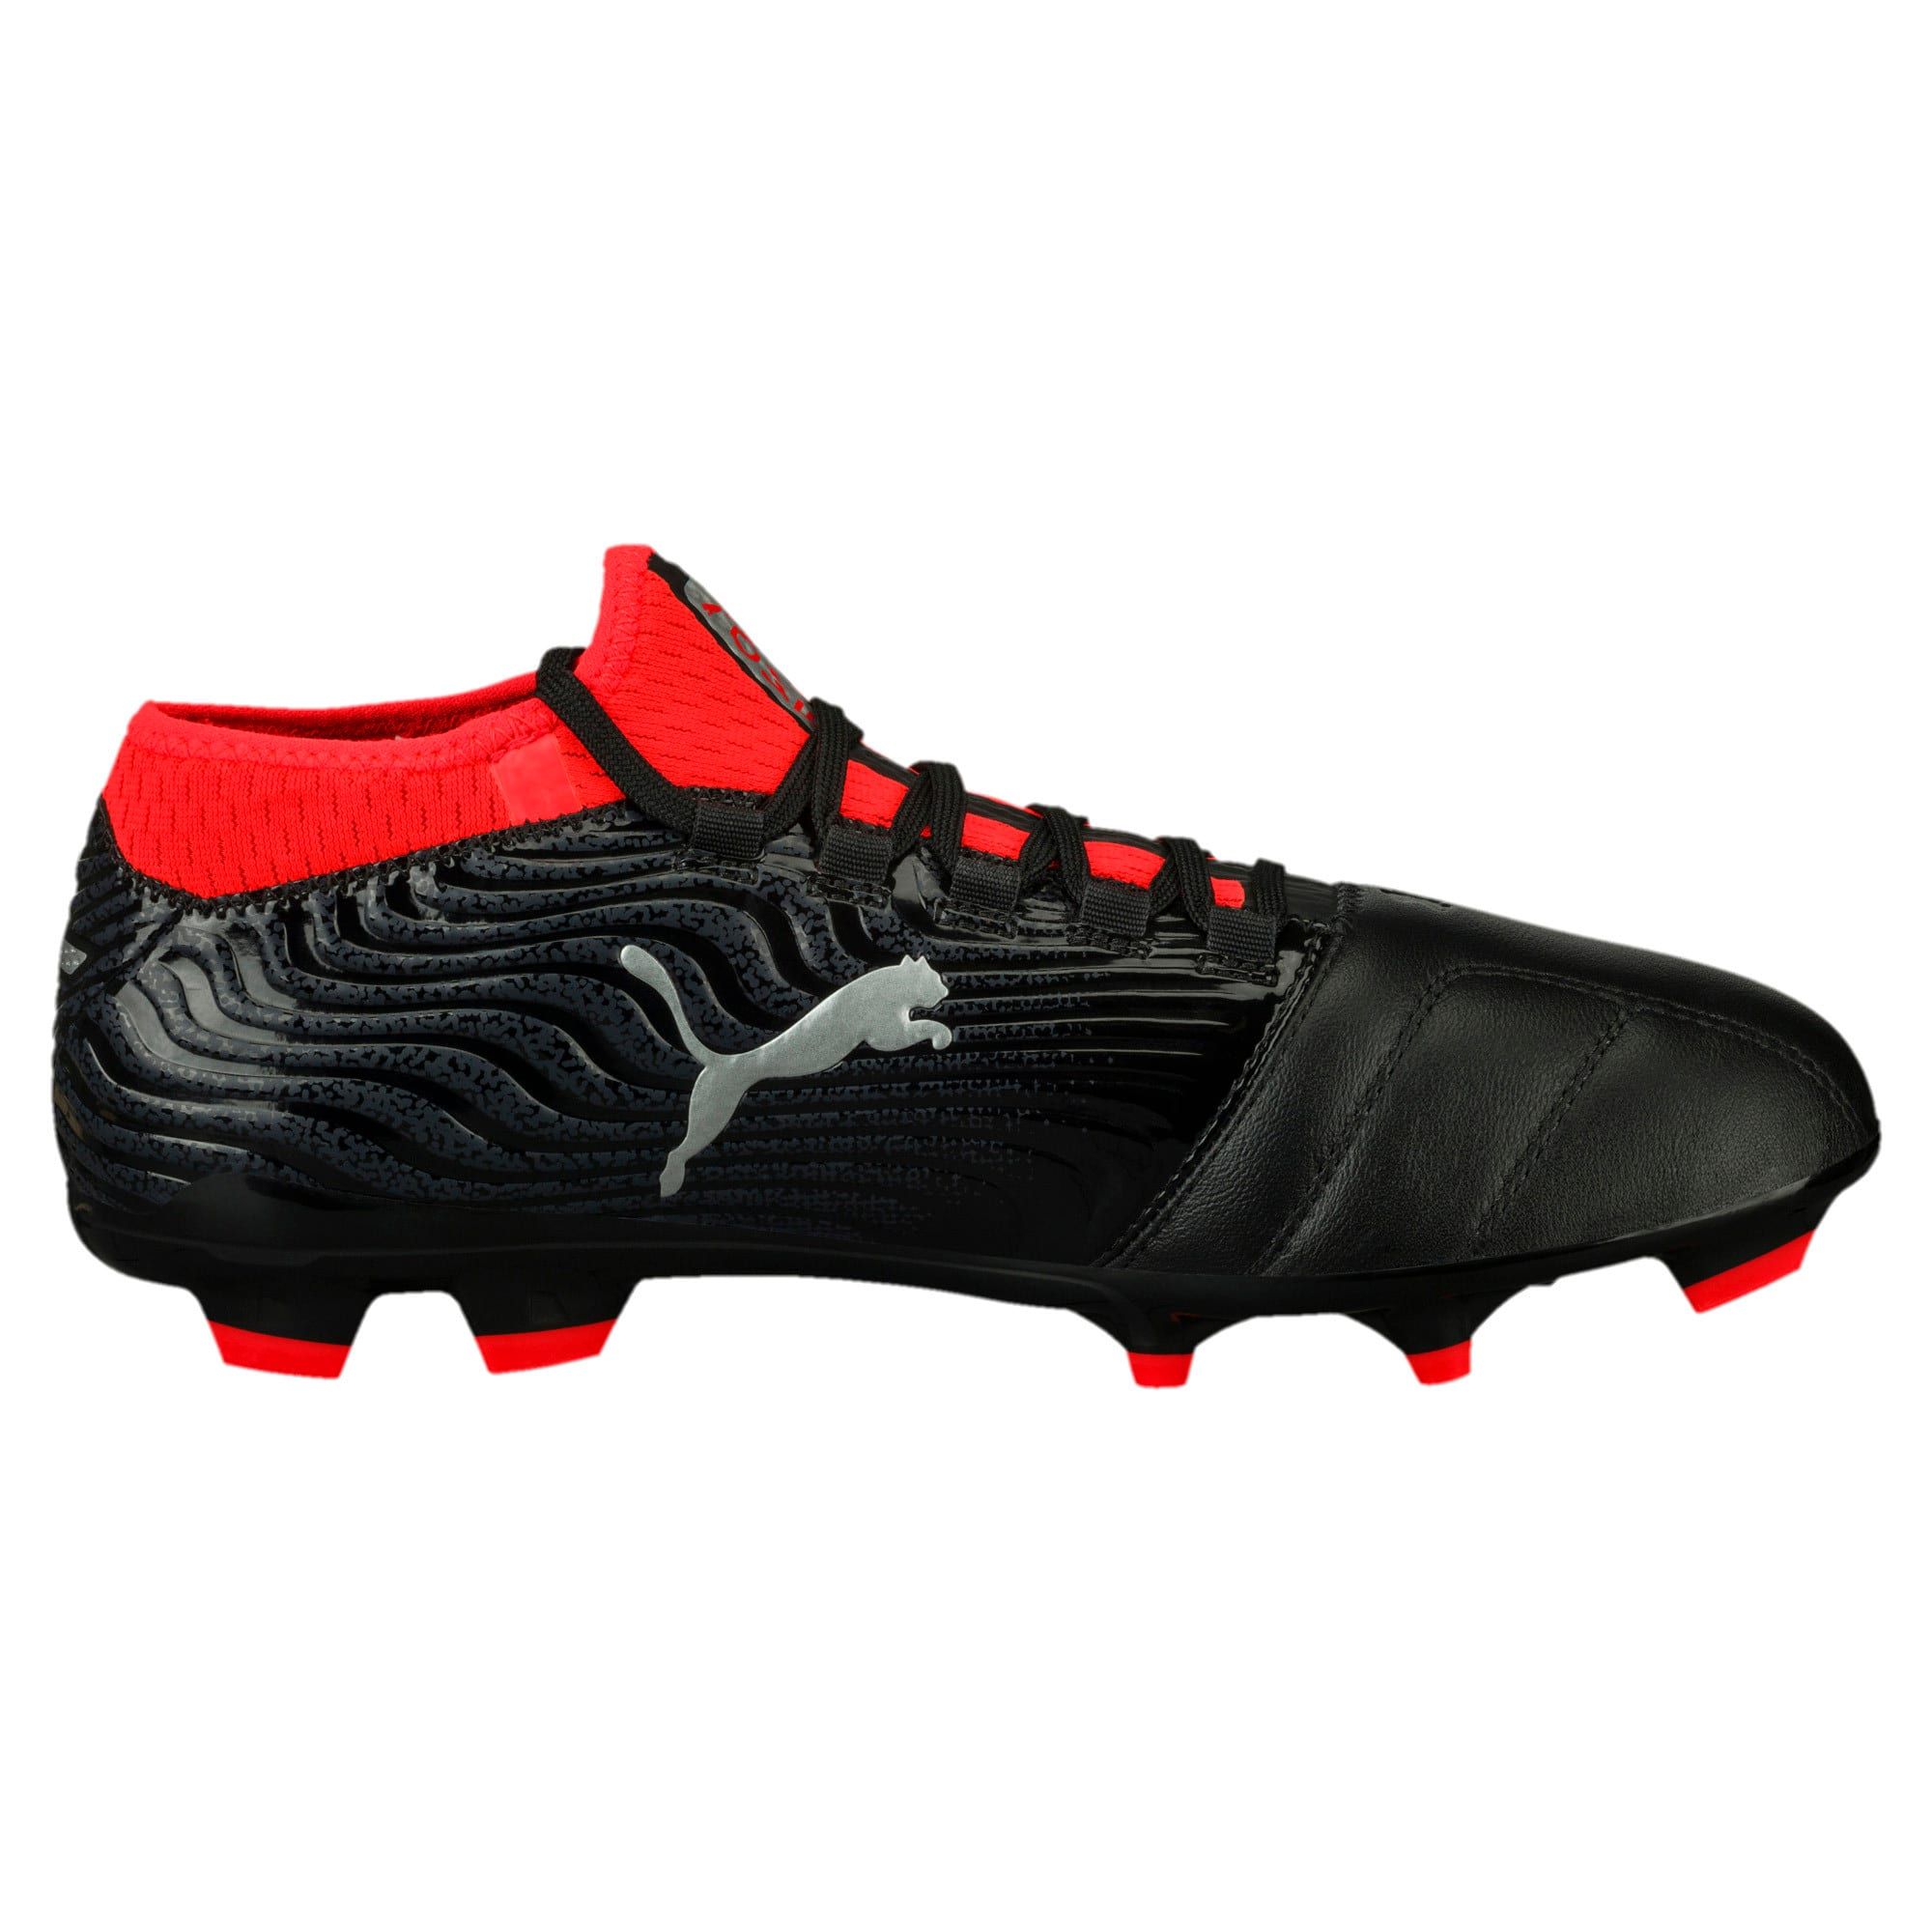 Thumbnail 4 of ONE 18.3 FG Men's Football Boots, Black-Silver-Red, medium-IND